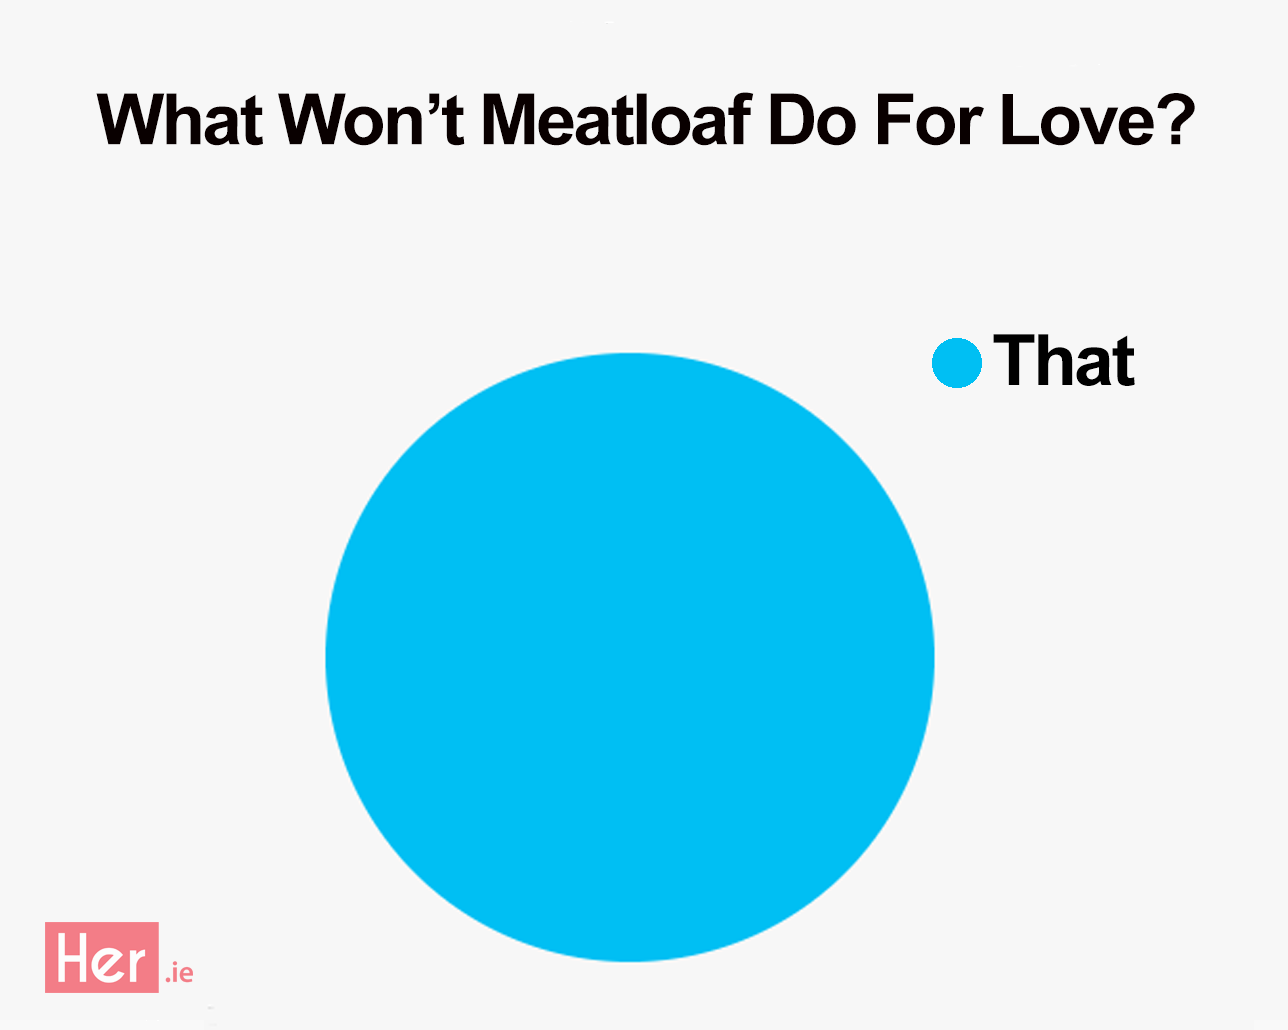 Popular songs represented as pie charts her piechart4 nvjuhfo Image collections